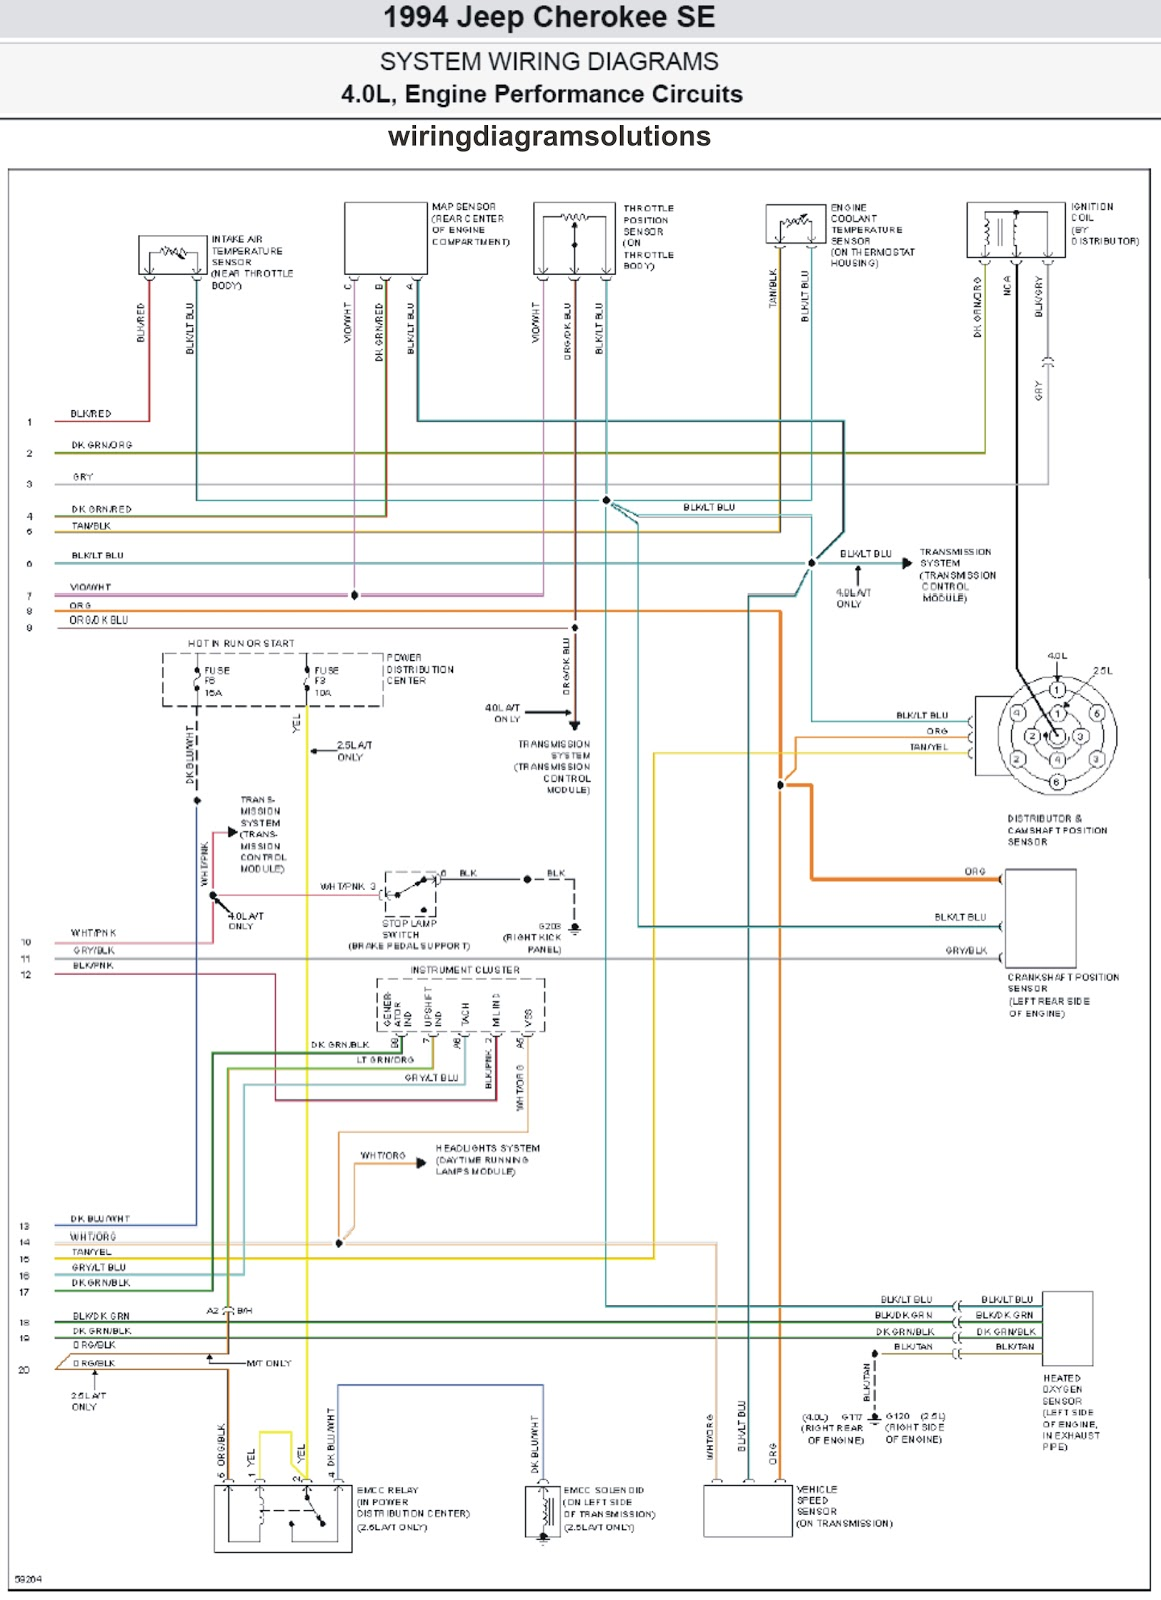 may 2011 | schematic wiring diagrams solutions 99 cherokee wiring diagram 99 grand cherokee wiring diagram #5